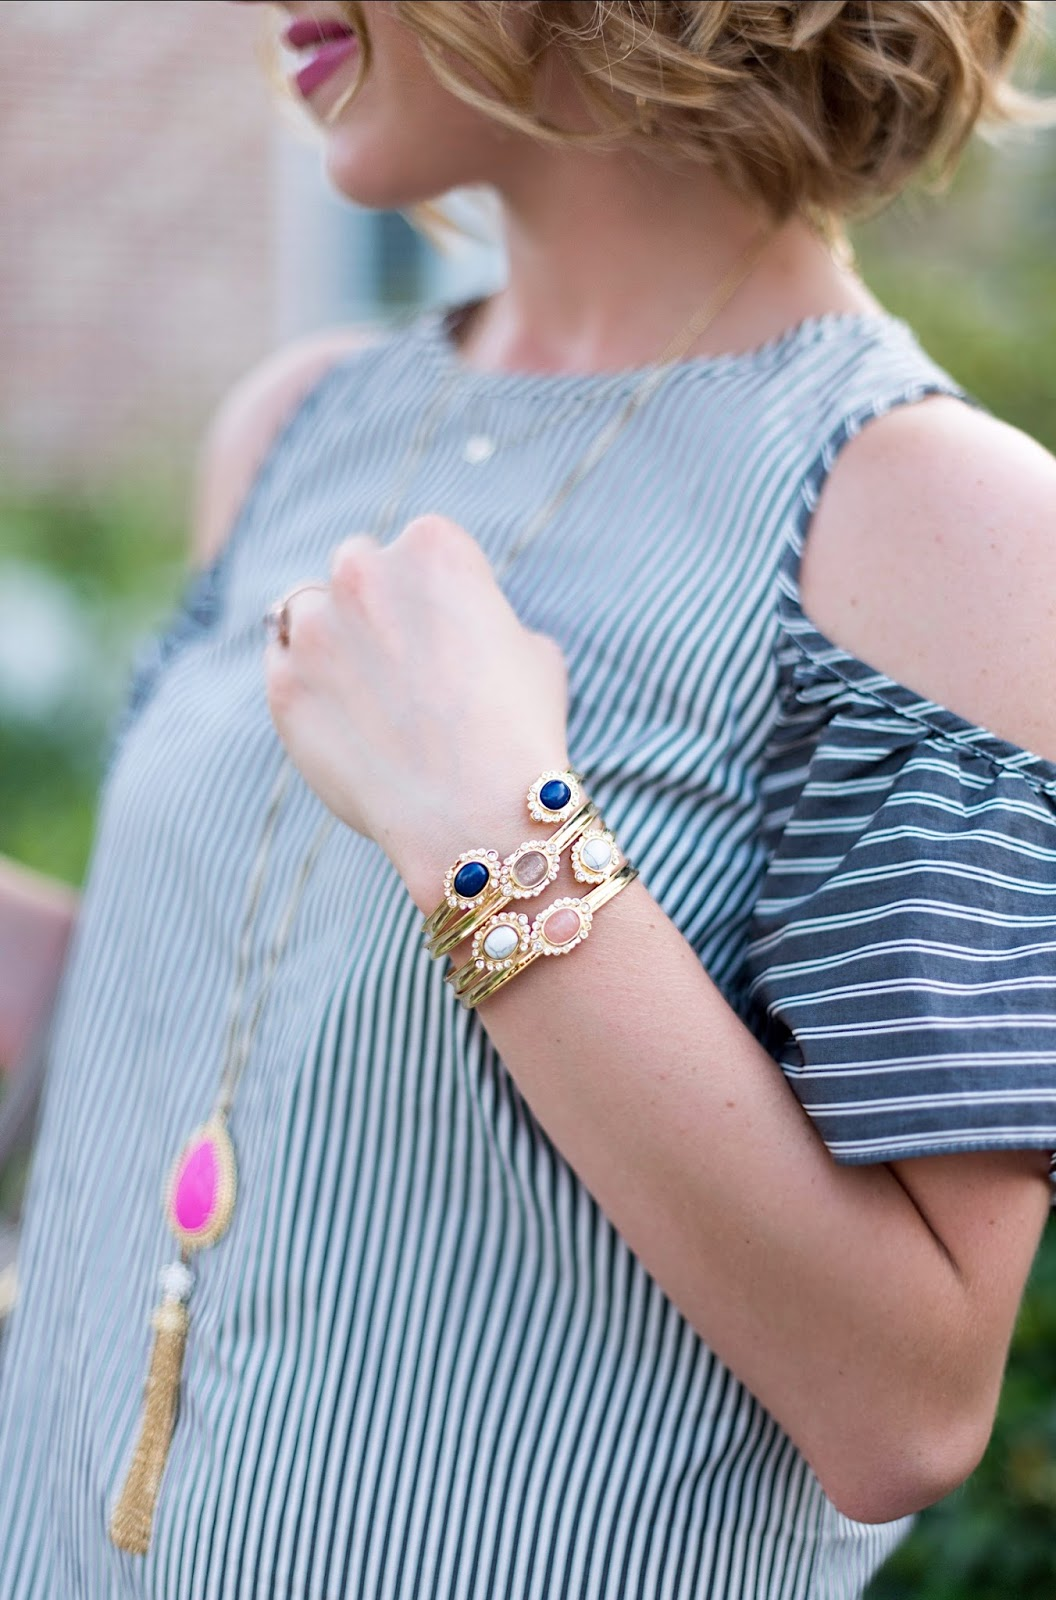 Frazier Lynn Bracelets - Click through to see more on Something Delightful Blog!